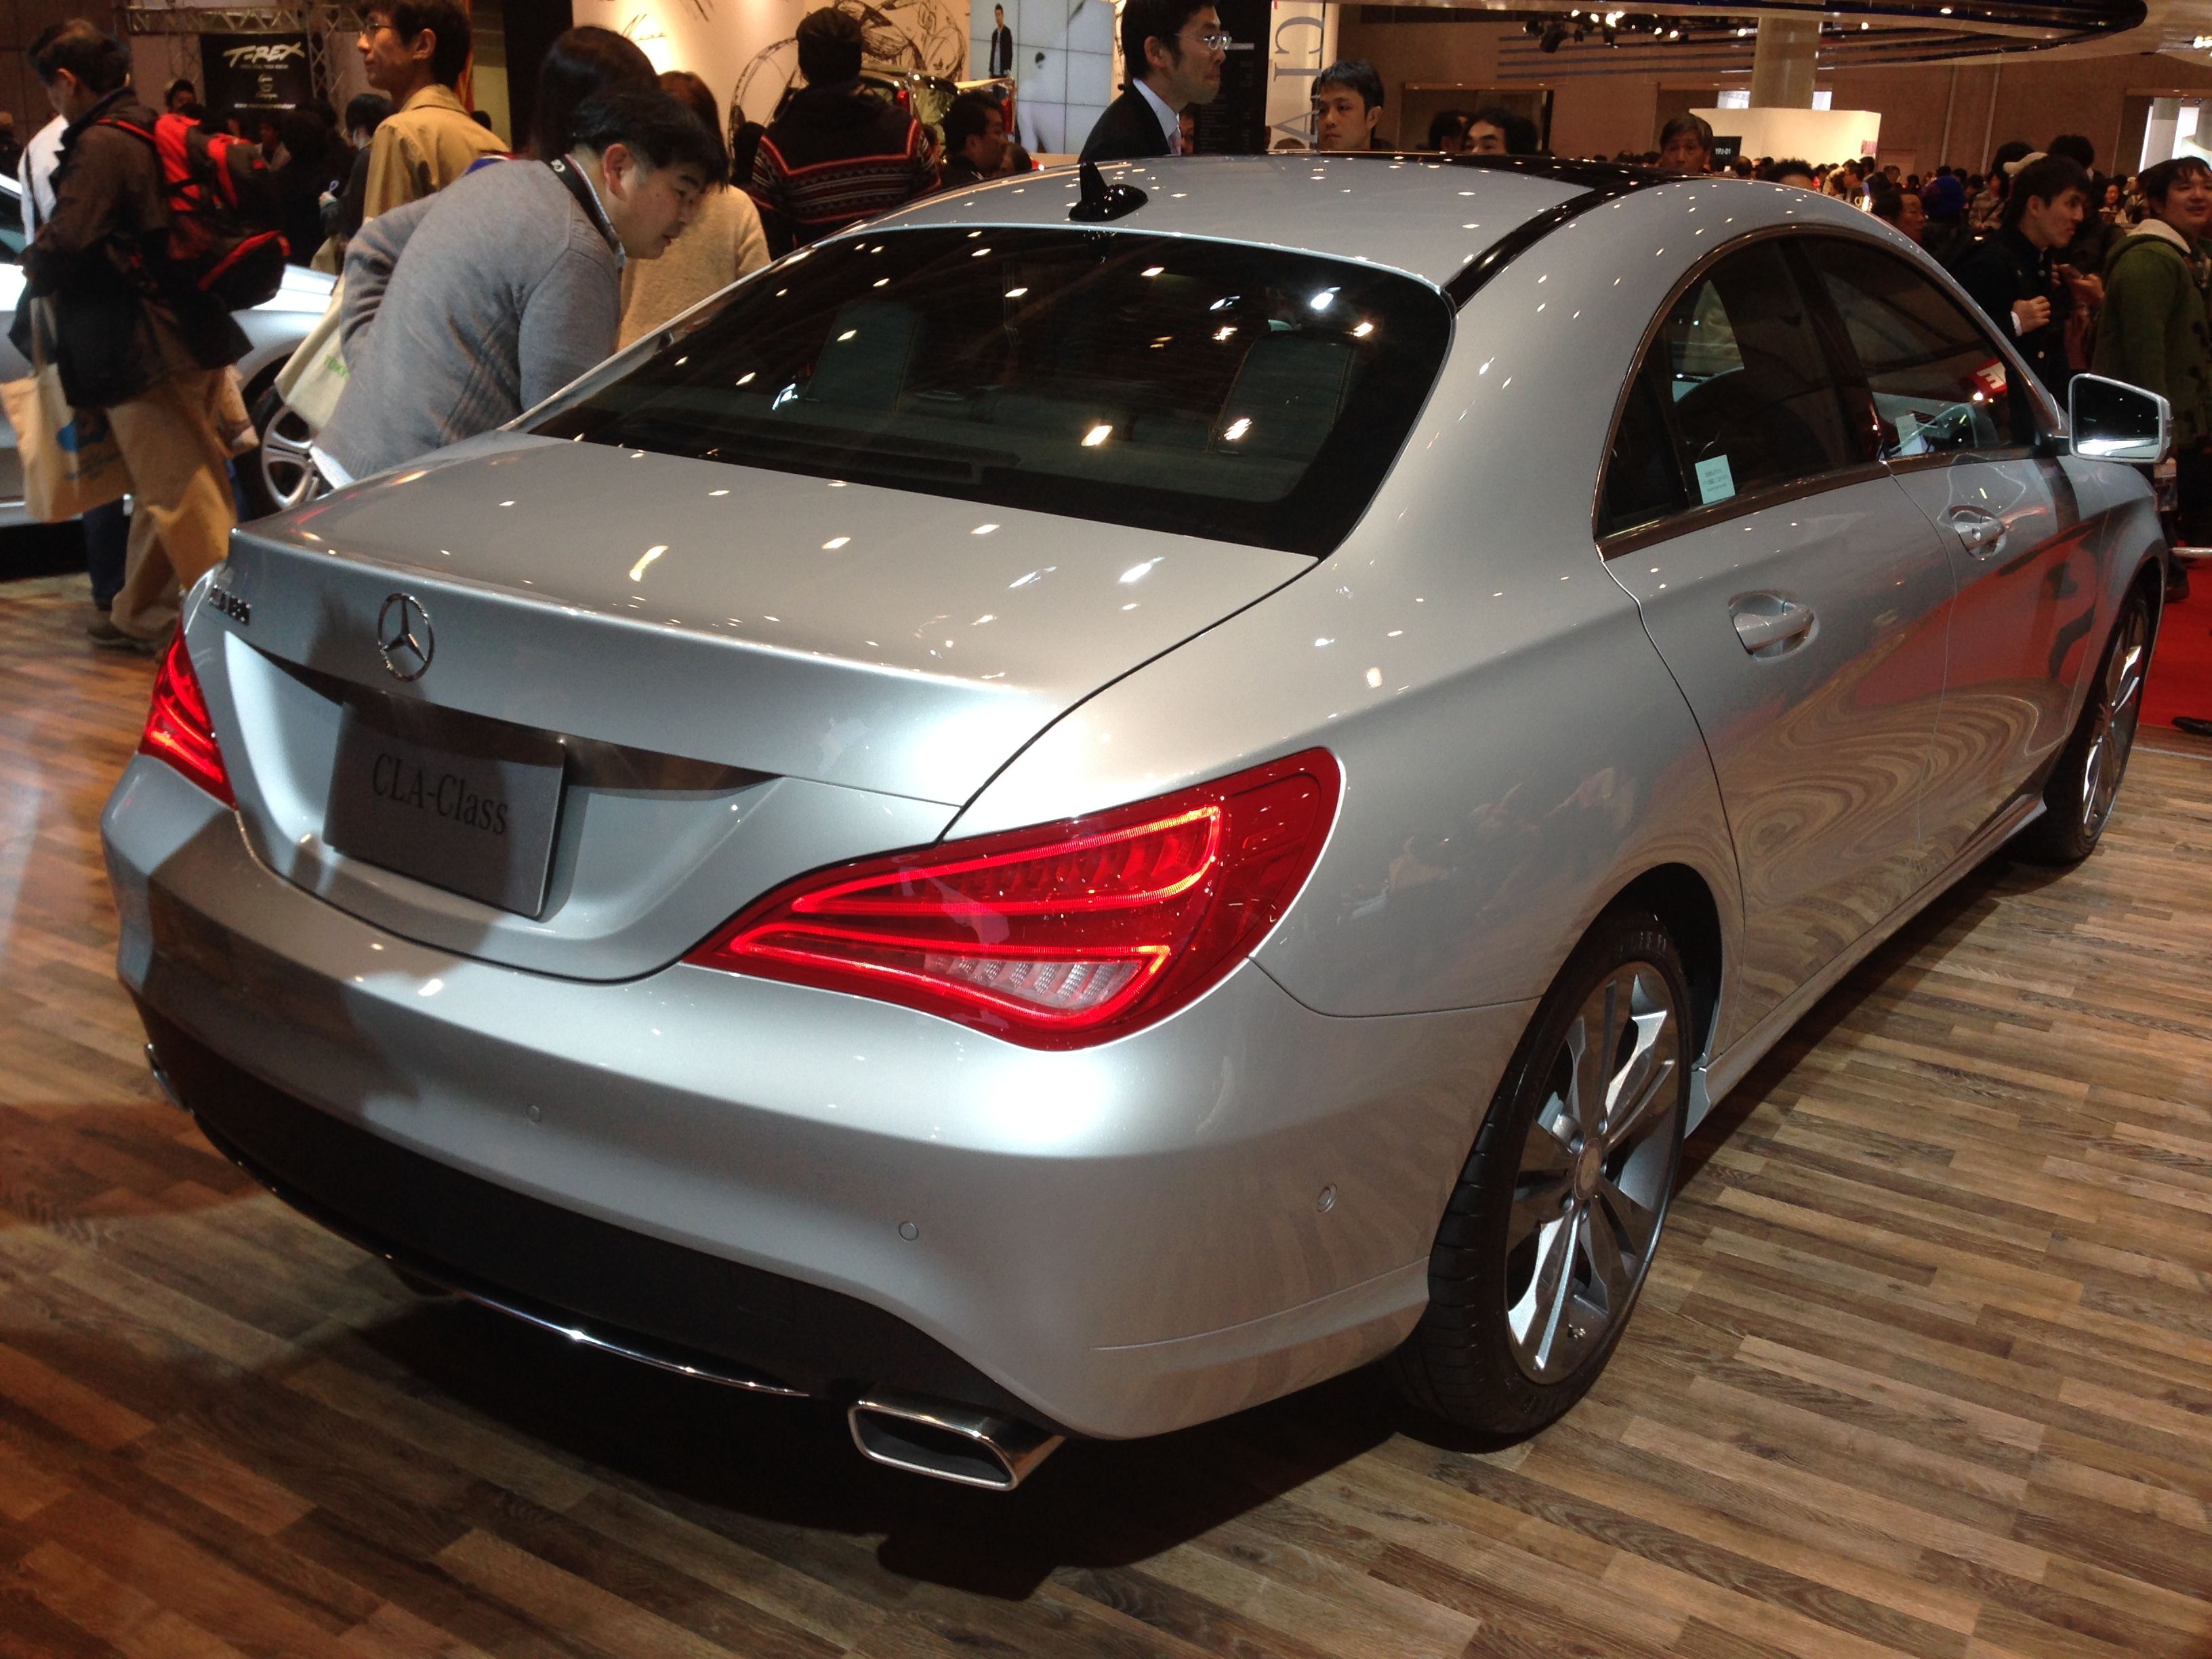 file mercedes benz cla 180 rear tokyo motor show. Black Bedroom Furniture Sets. Home Design Ideas